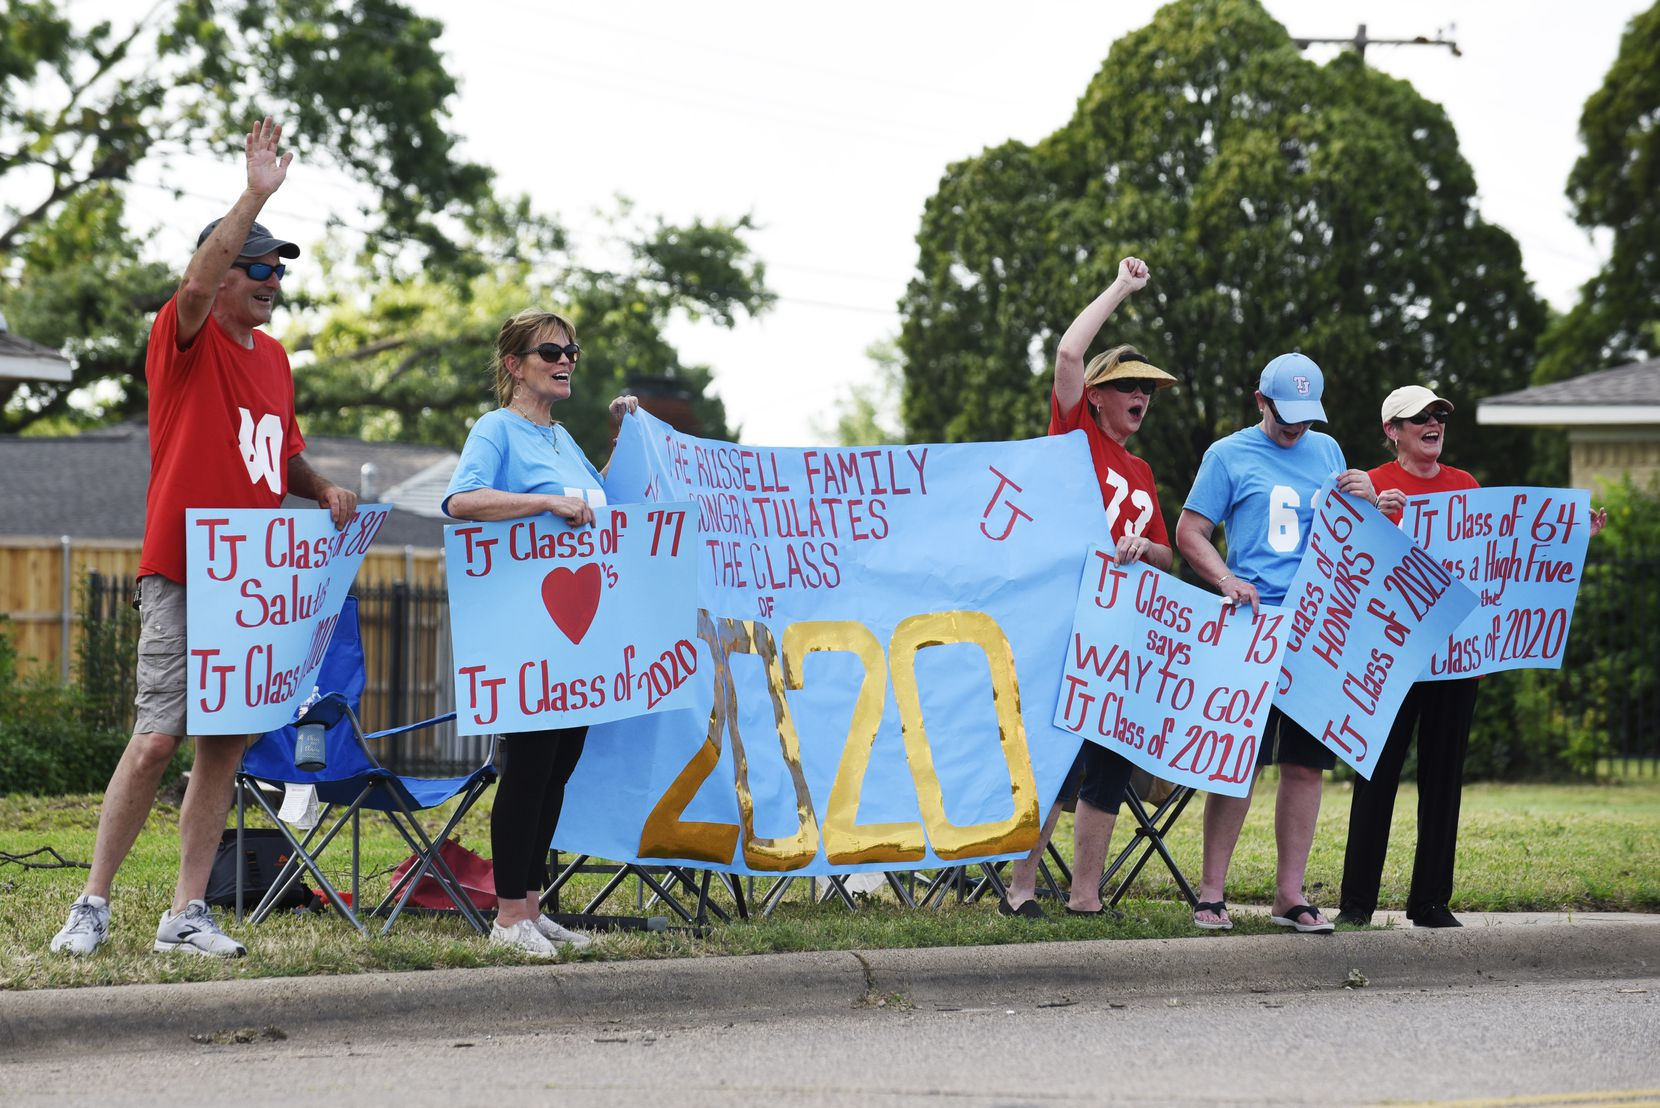 The Russell family and Thomas Jefferson High School alumni cheered for graduating TJ seniors during a parade outside the Dallas school on May 19. At the event, titled Senior Sunset, the seniors were handed personalized yard signs, prom goody bags and caps and gowns through rolled-down windows,